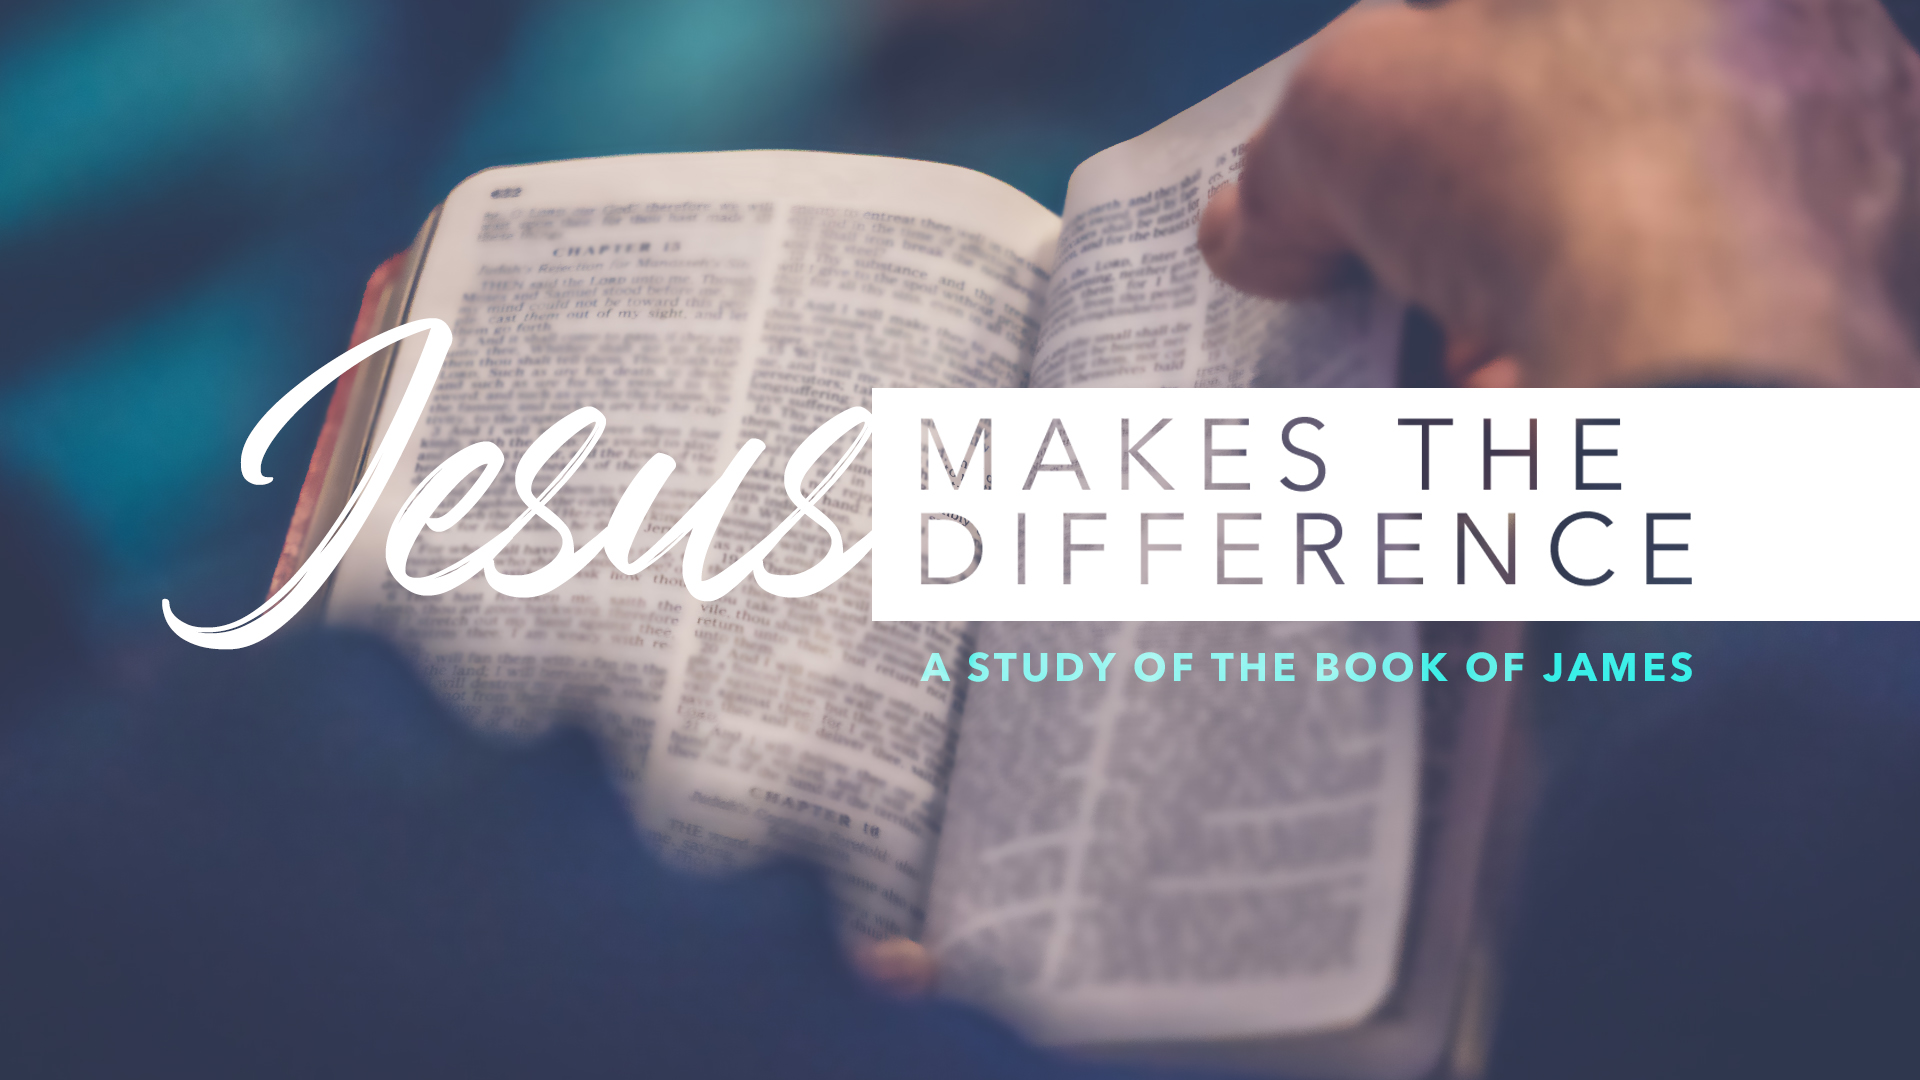 Why Arent My Prayers Answered - Jesus Makes the Difference